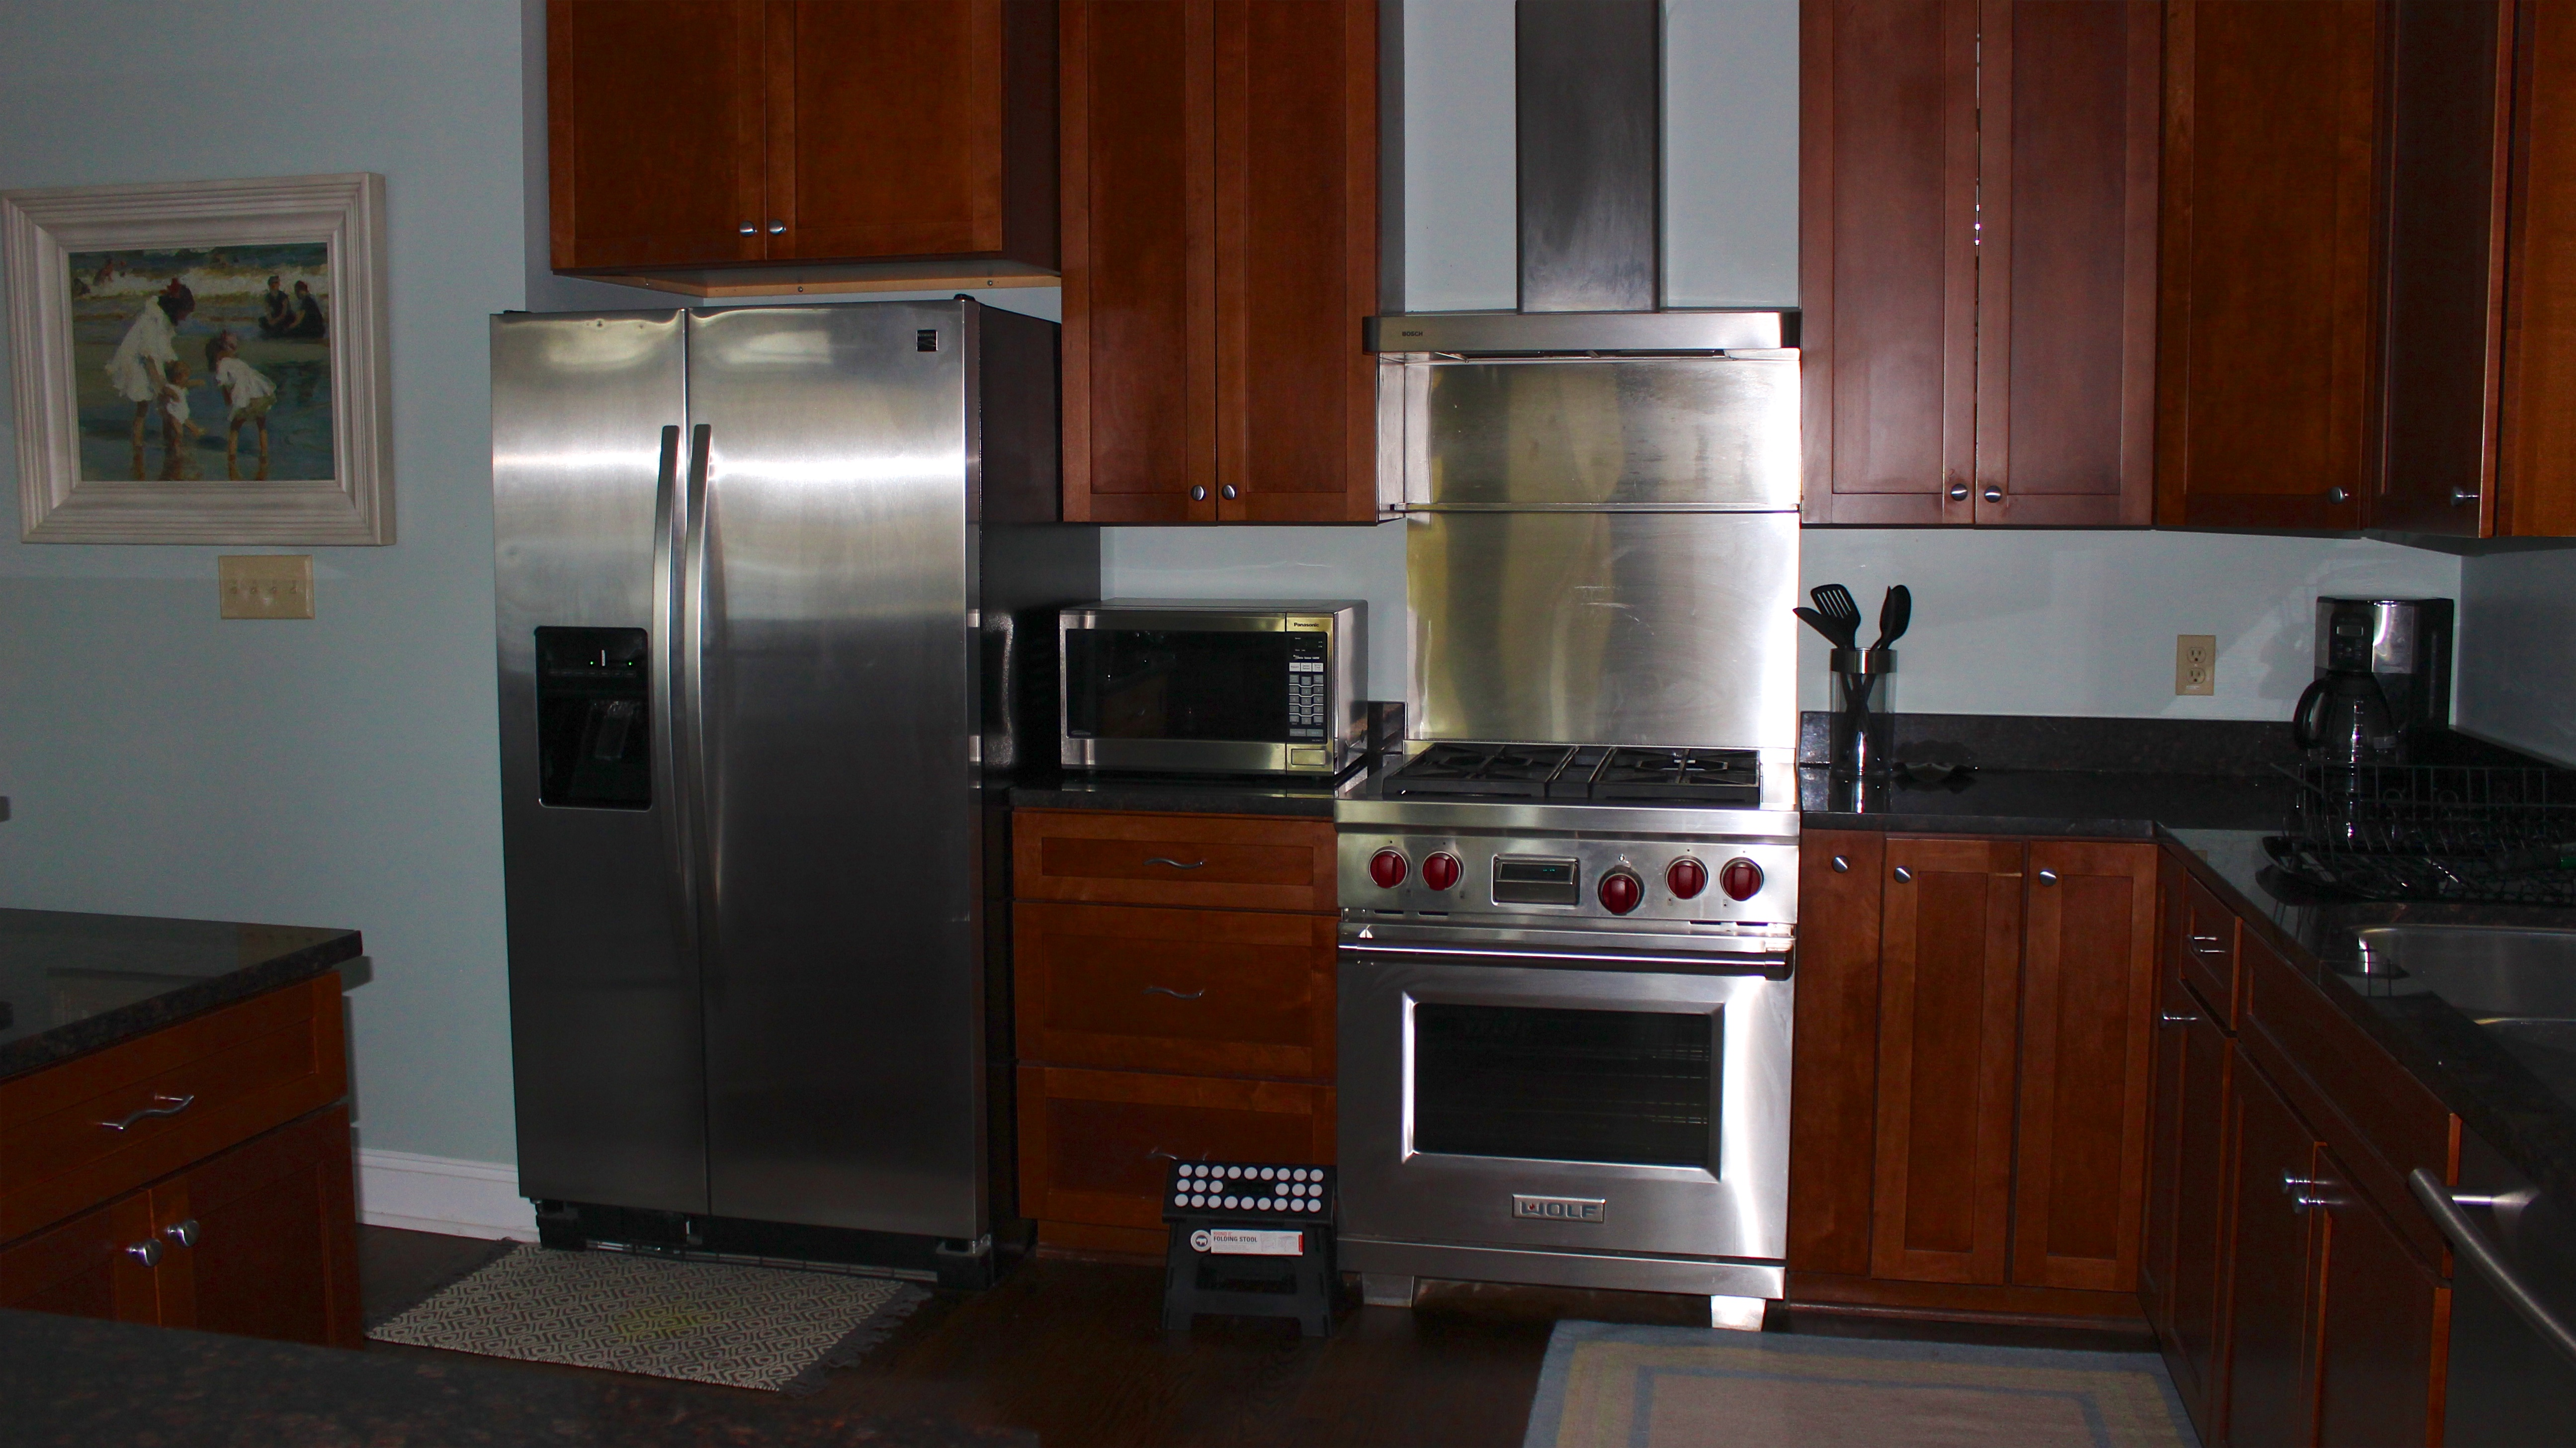 Features include stainless appliances, granite counters and a gas range/oven.